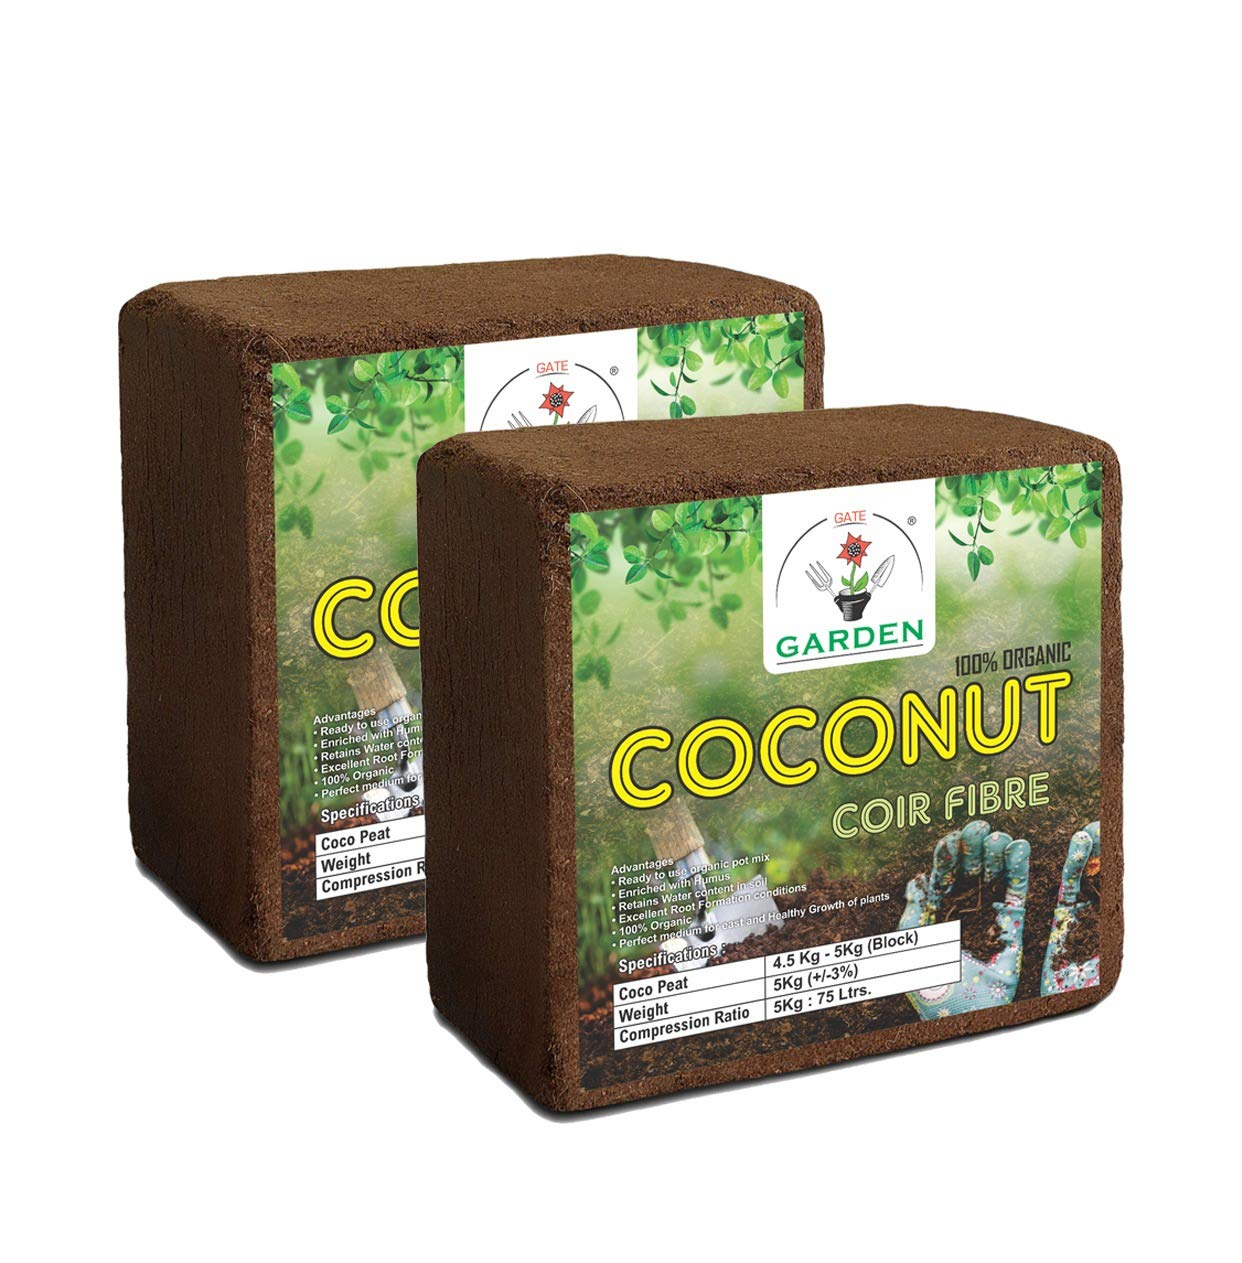 GATE GARDEN Cocopeat Block | Agropeat Block - Expands Up to 150 litres